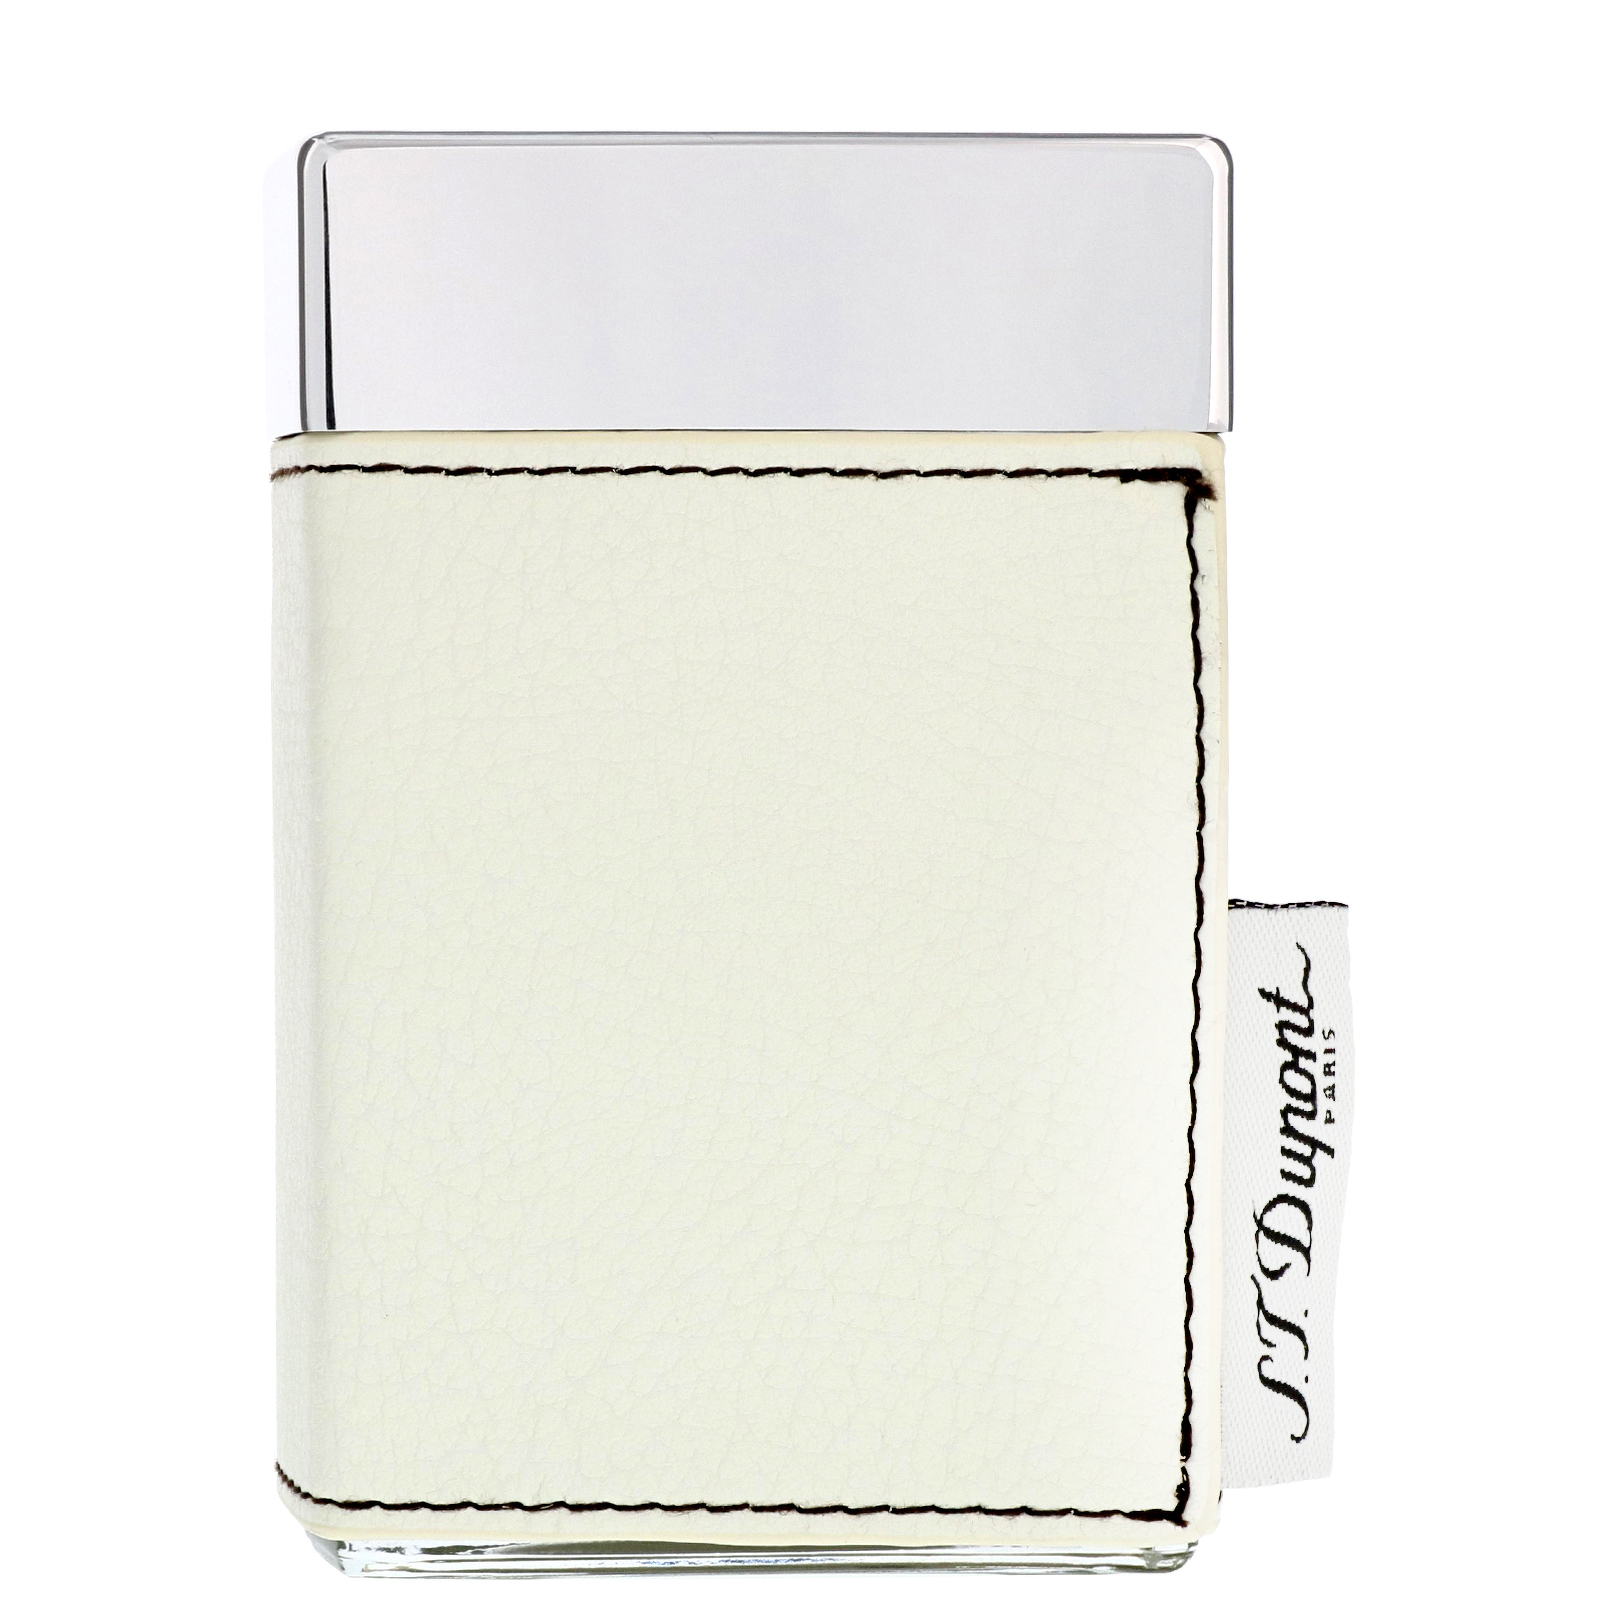 ST Dupont Passenger for Women Eau de Parfum Spray 50ml